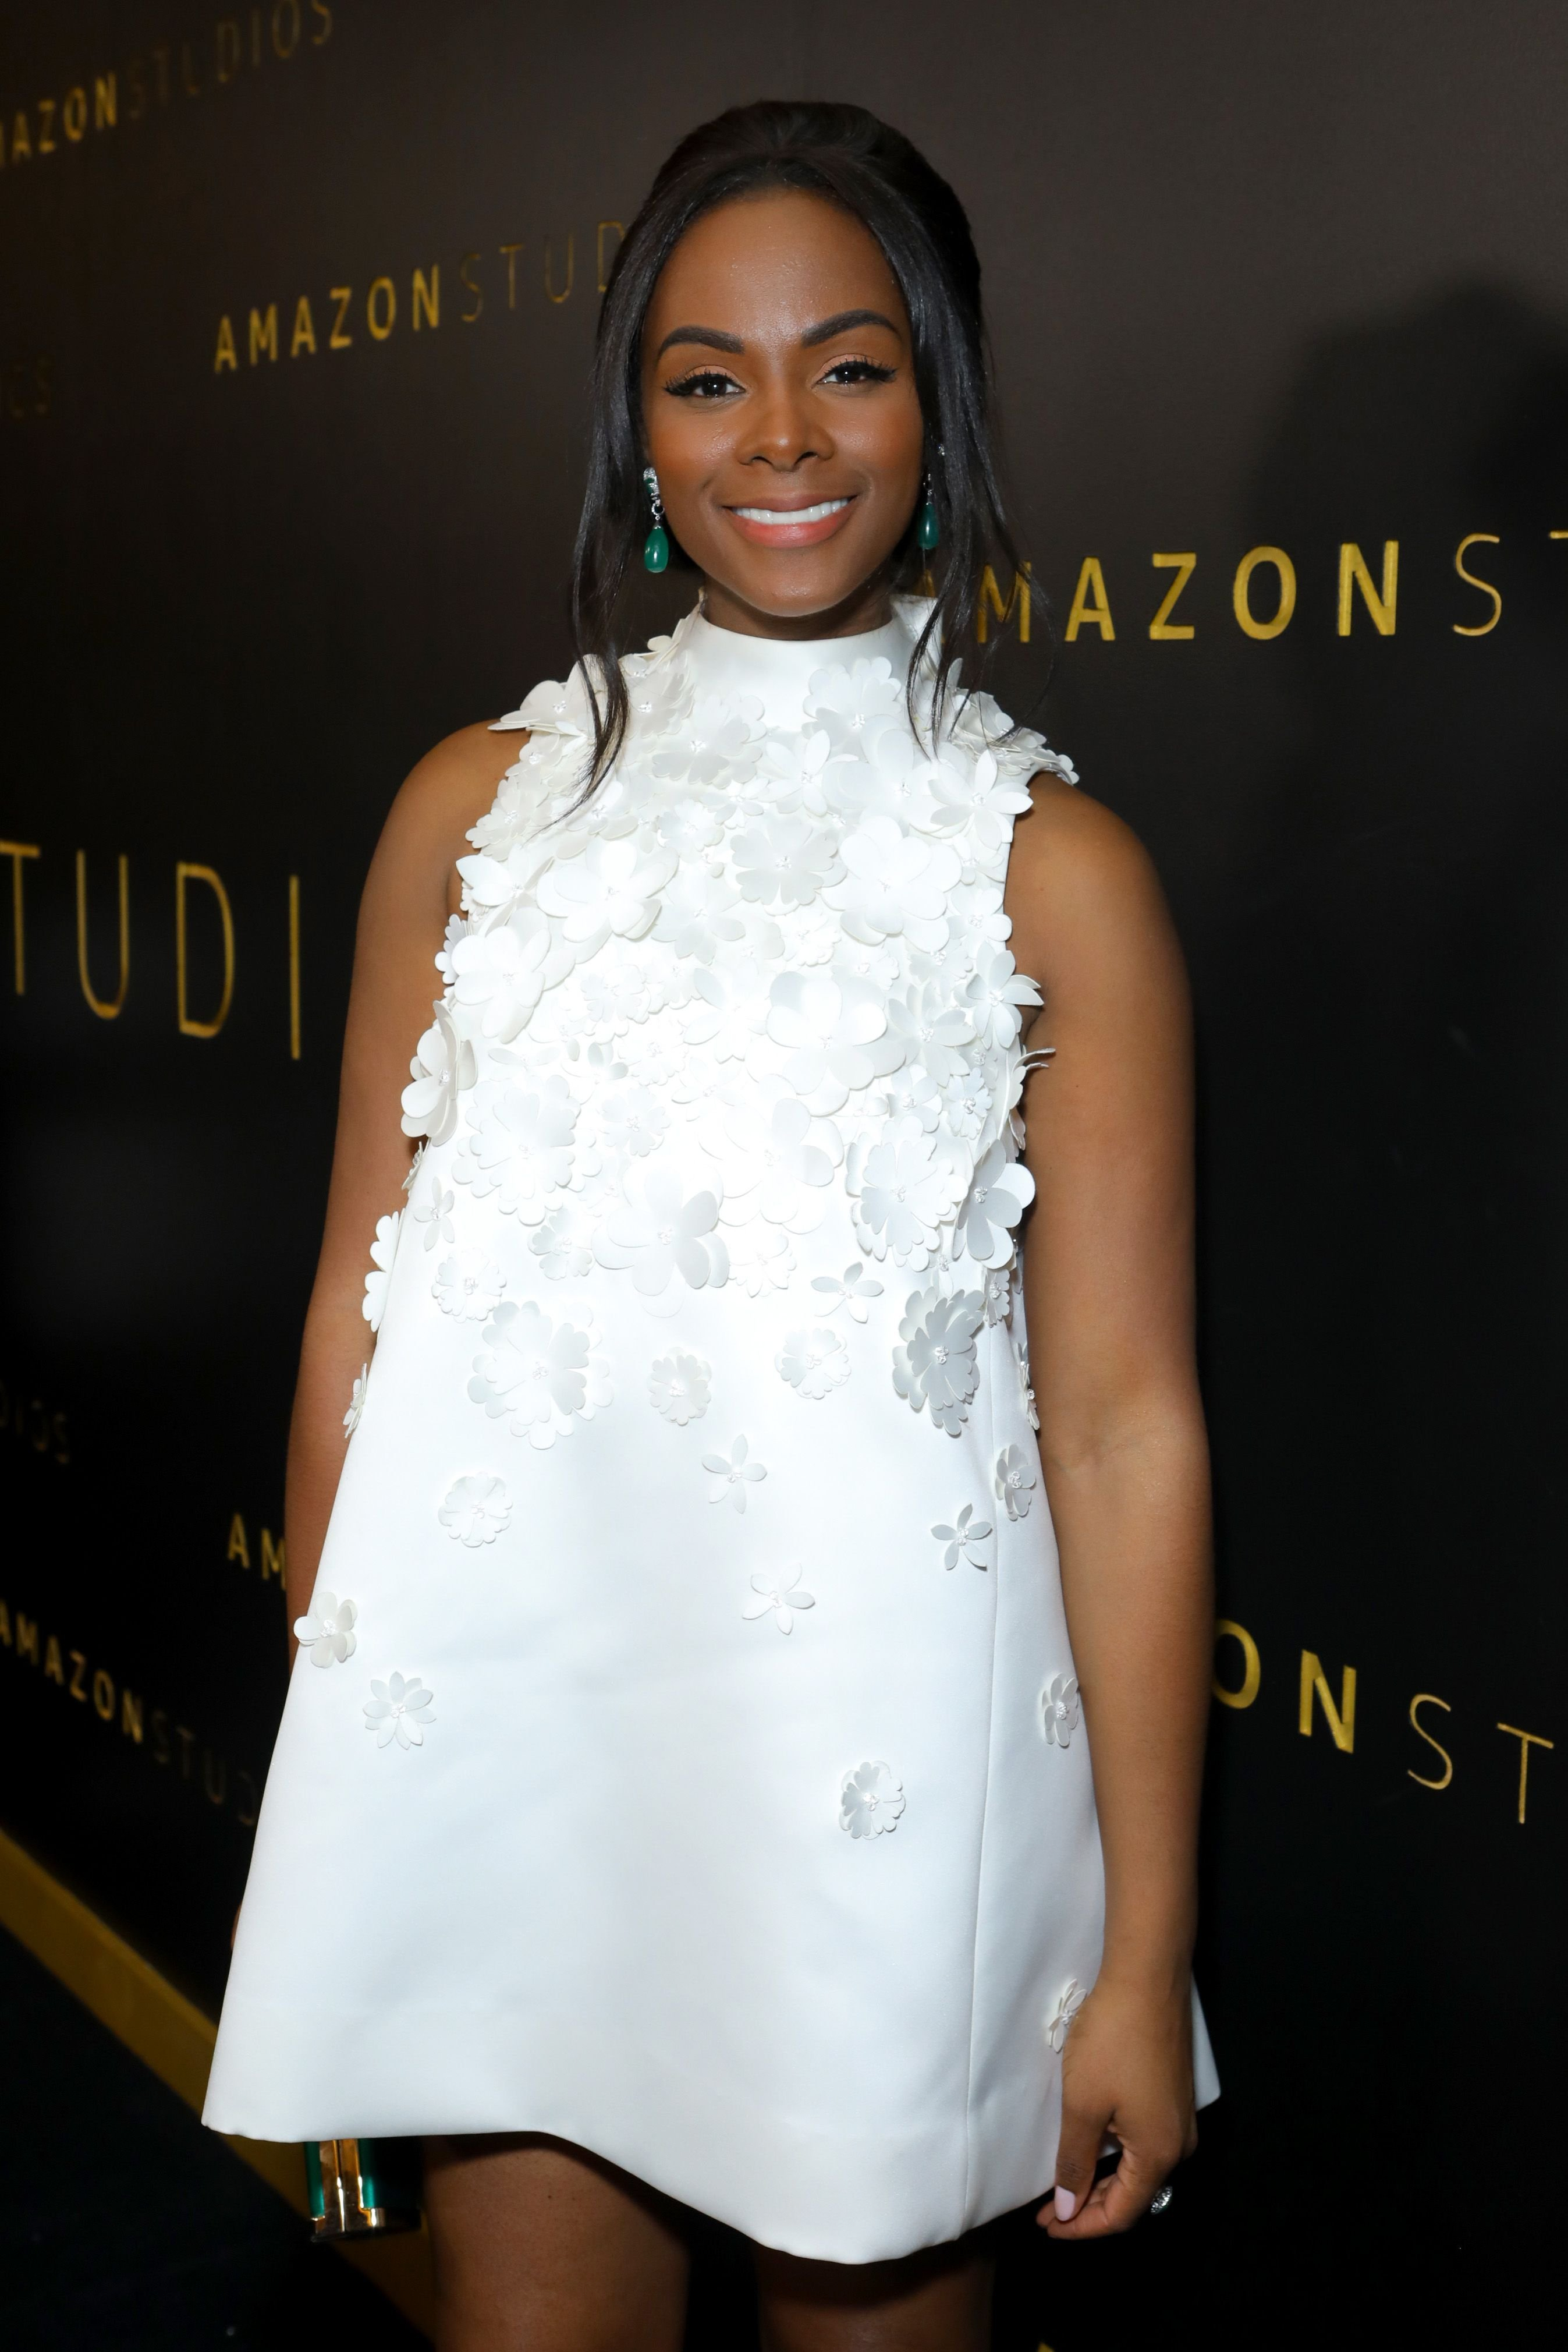 Tika Sumpter at the Golden Globe Awards after-party on January 6, 2019 in Beverly Hills.   Photo: Getty Images